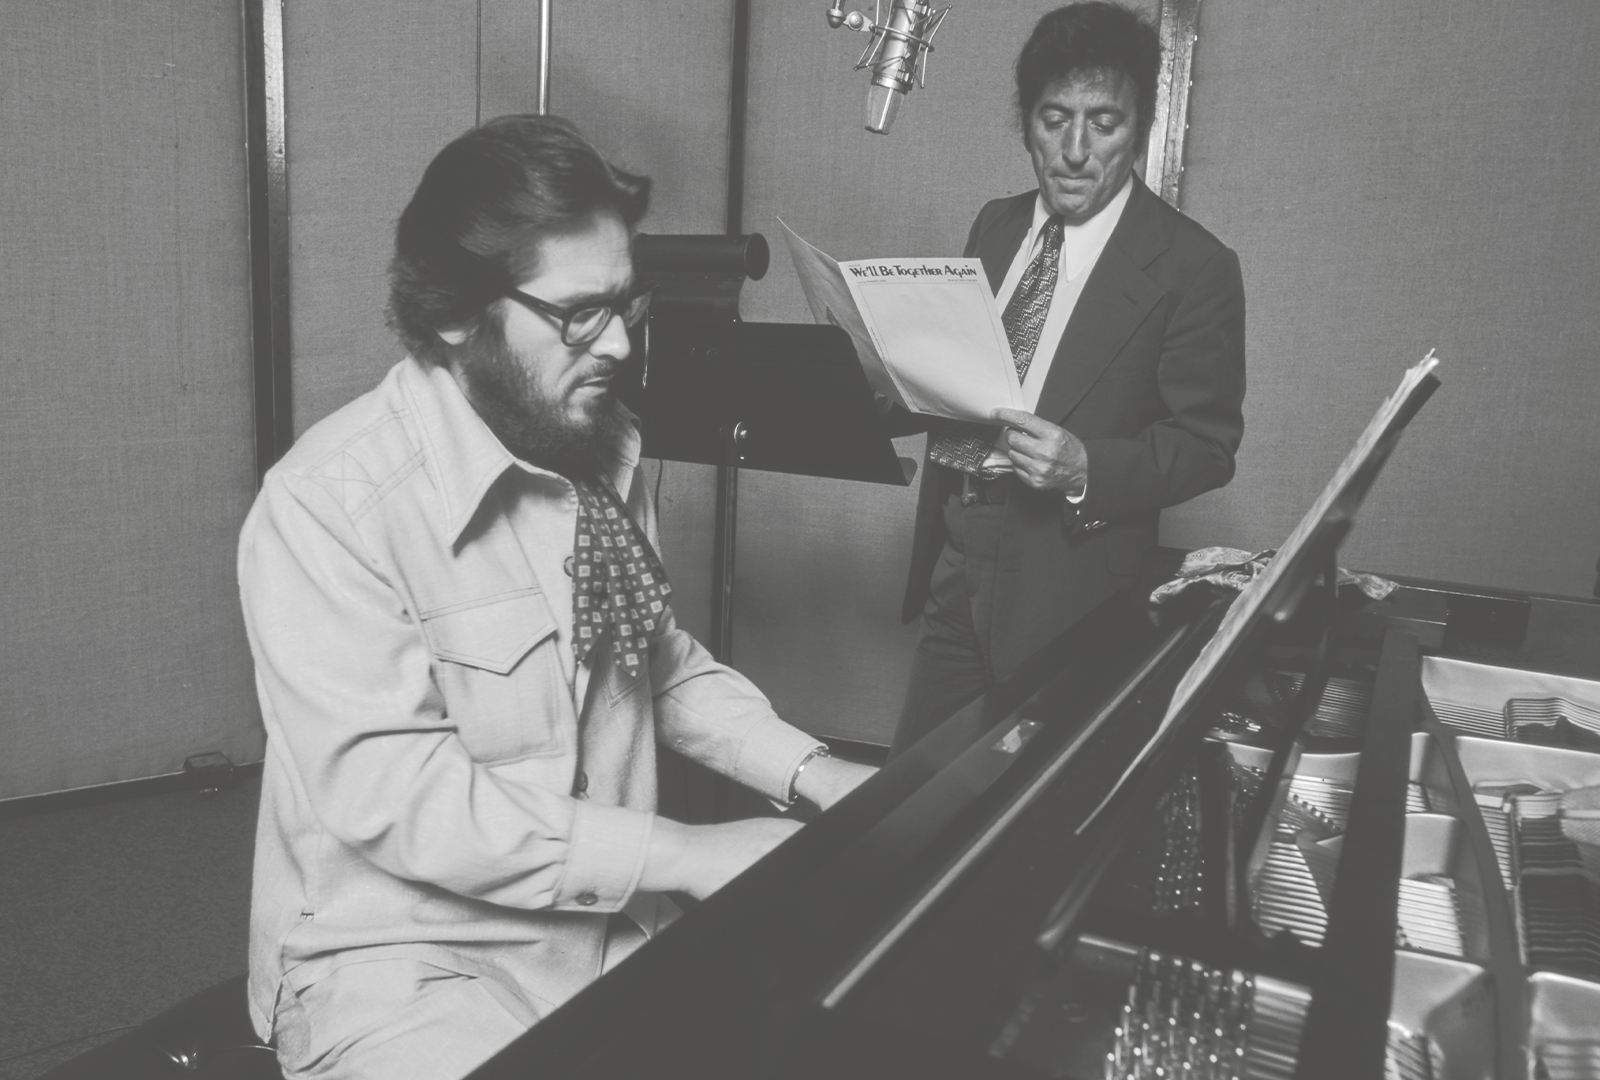 Bill Evans concert from 1975 gets first release on 2xLP